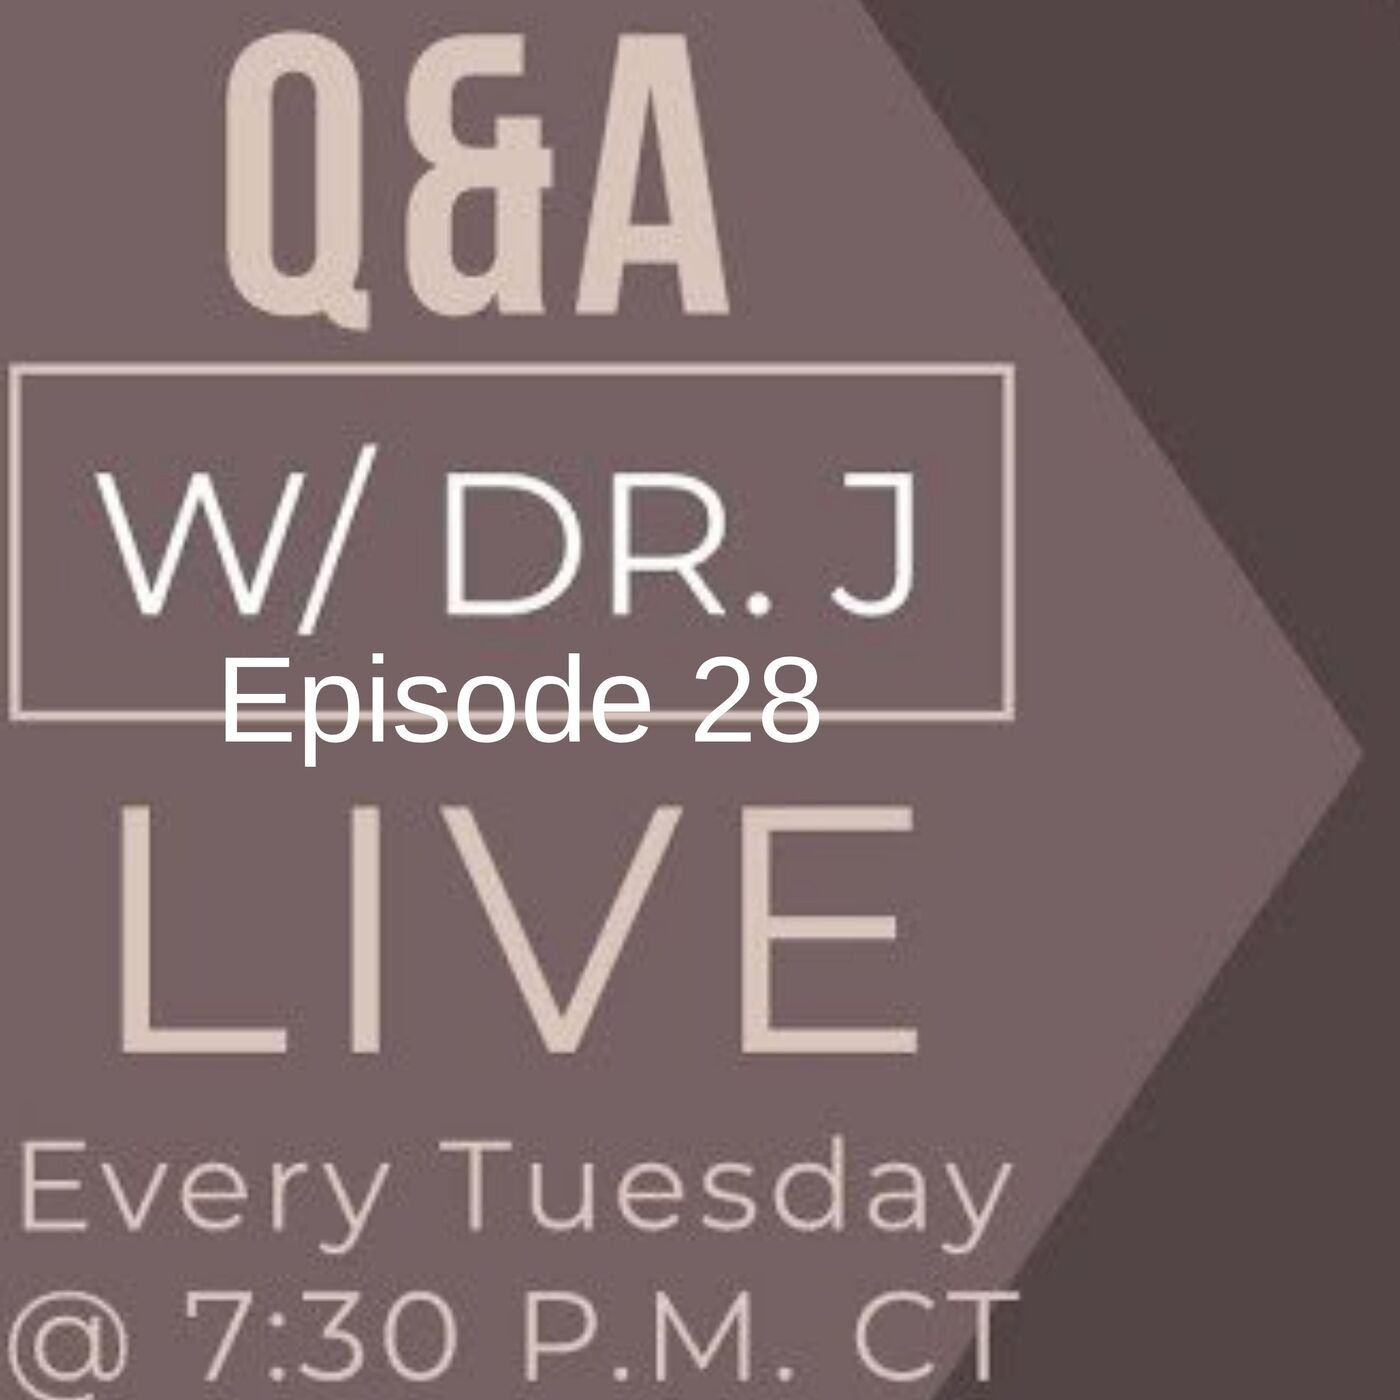 EP 28 Q&A w/ Dr J - All about Tummies with Dr Jeneby